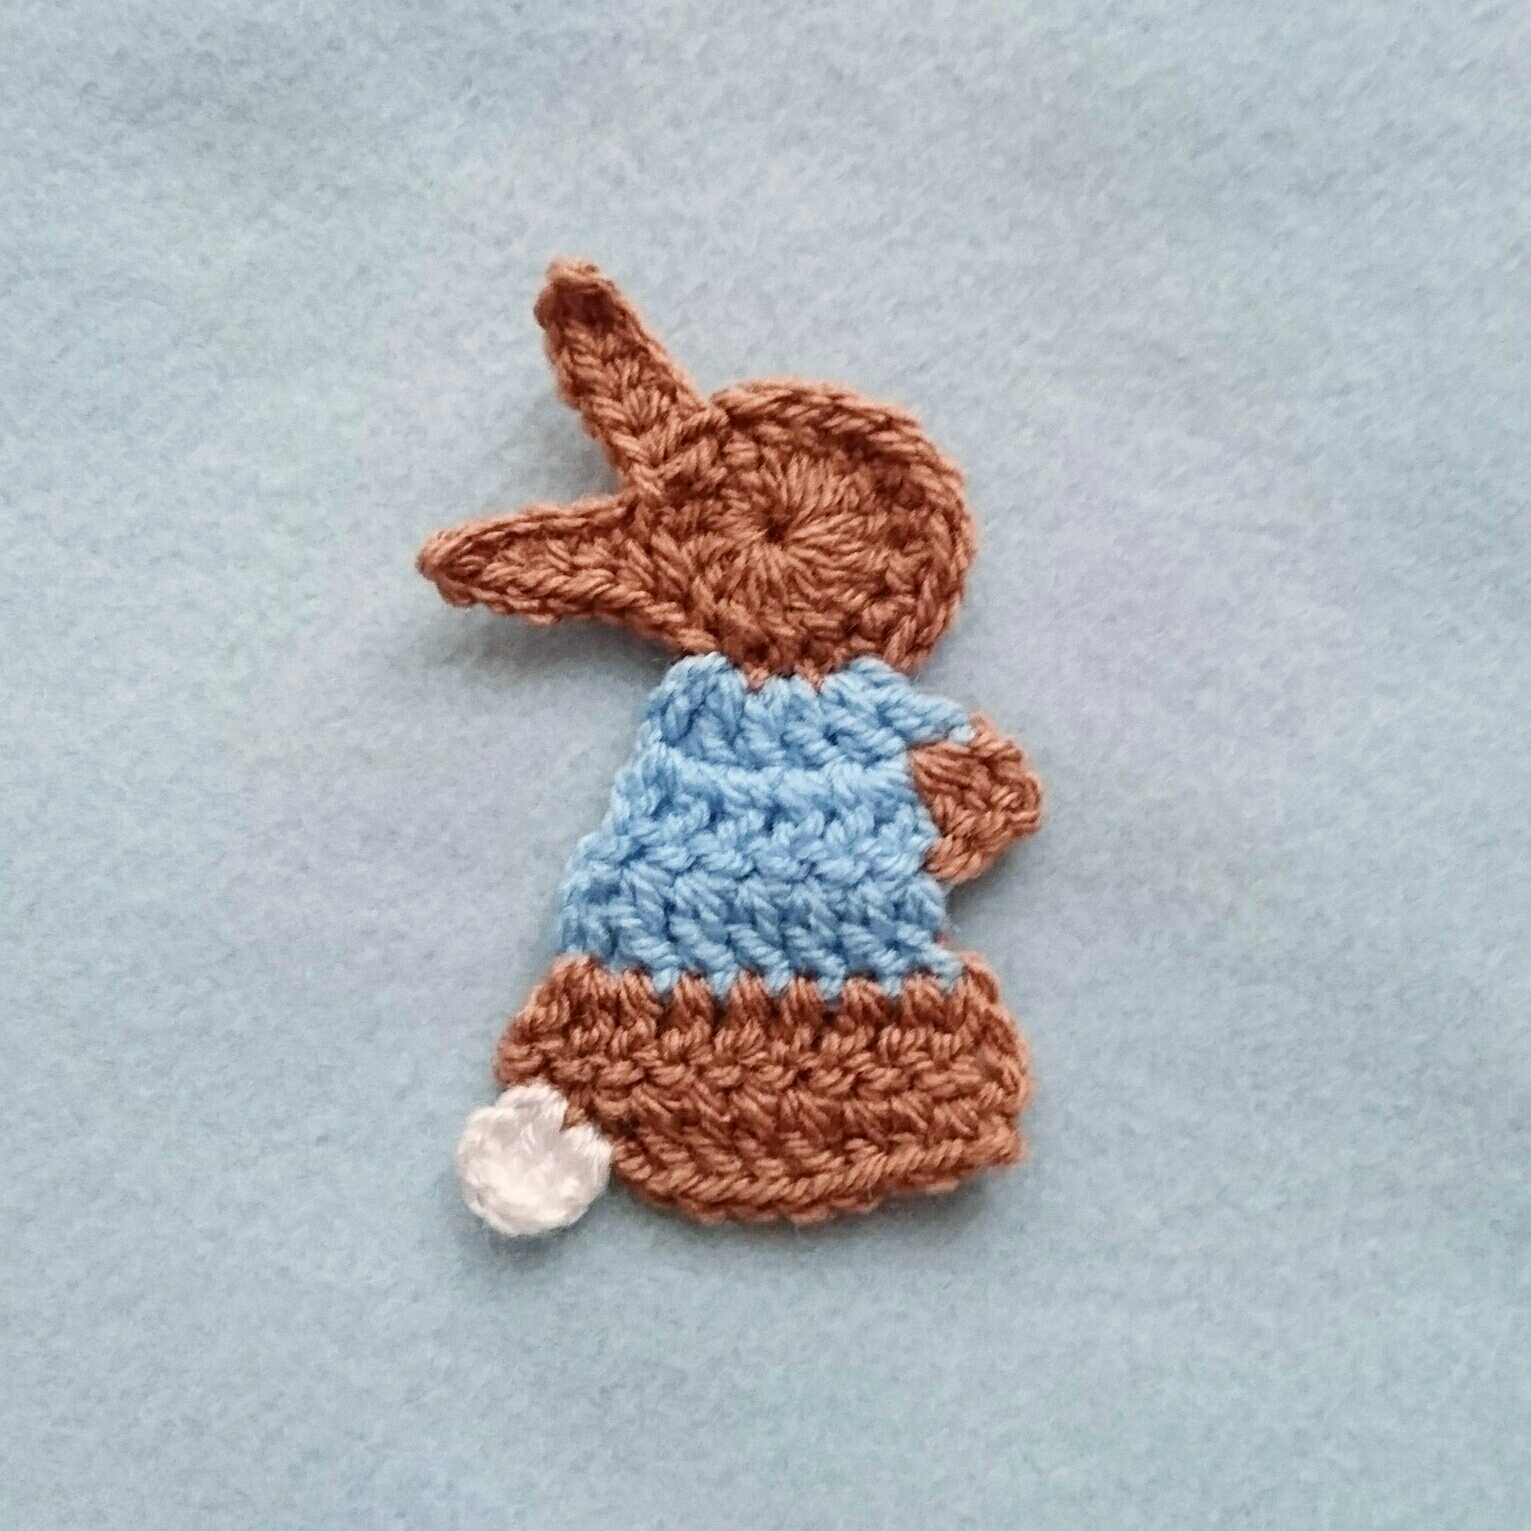 crochet-pattern-for-the-peter-rabbit-applique-beatrix-potter